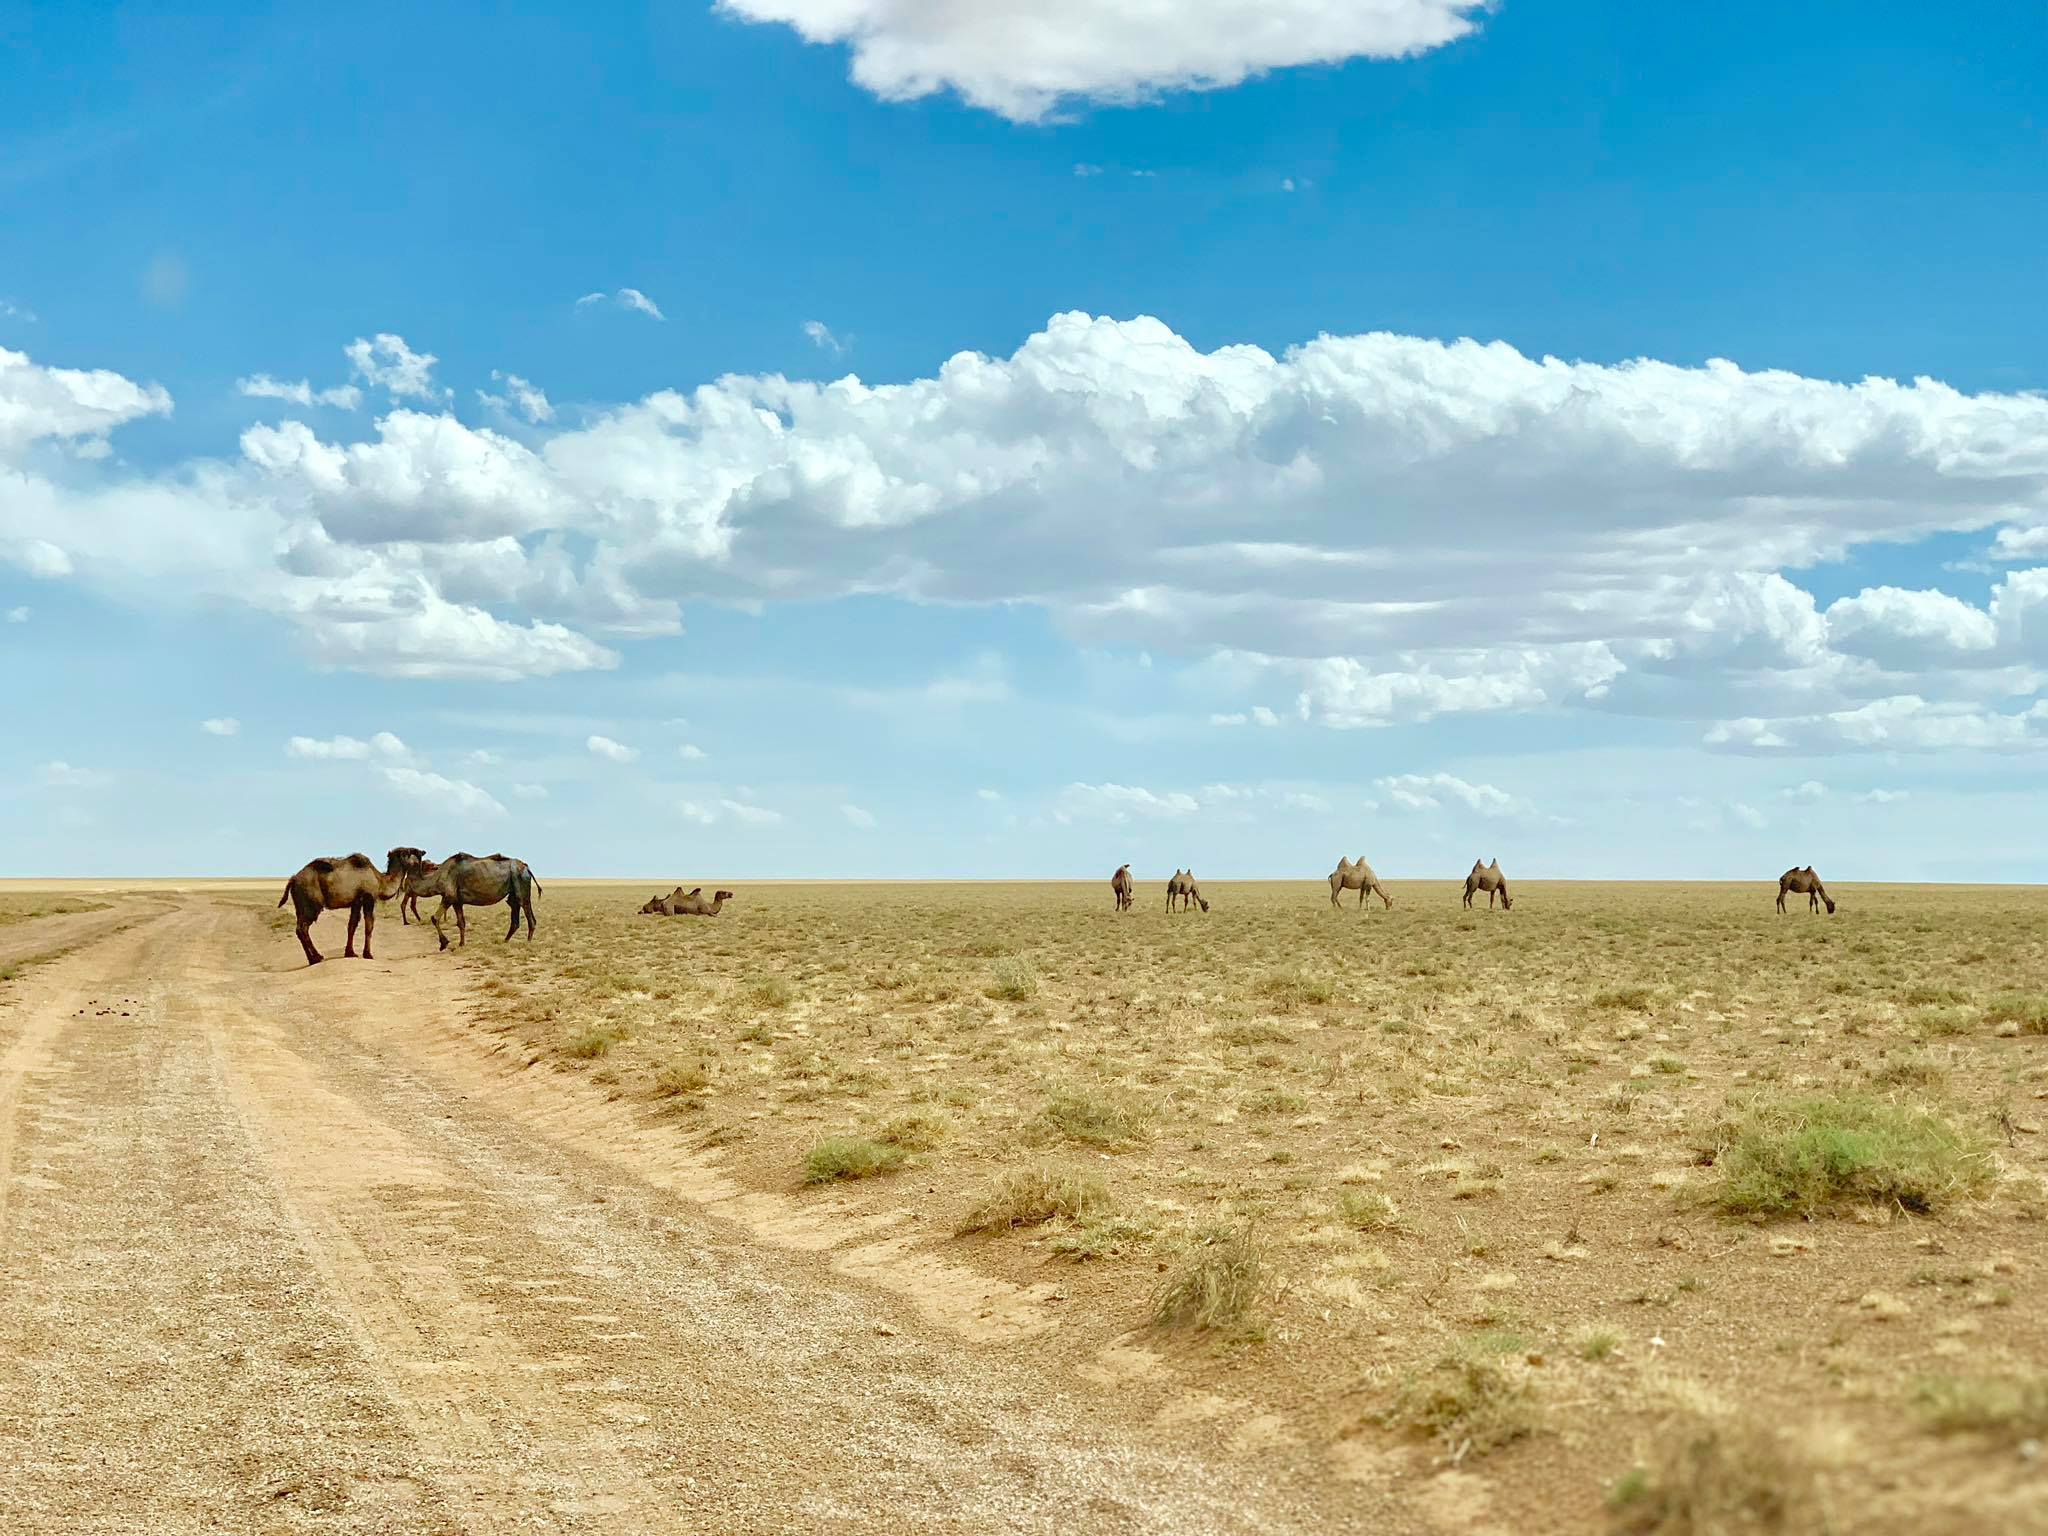 Kach Solo Travels in 2019 One of the hikes during my trip in Gobi desert25.jpg